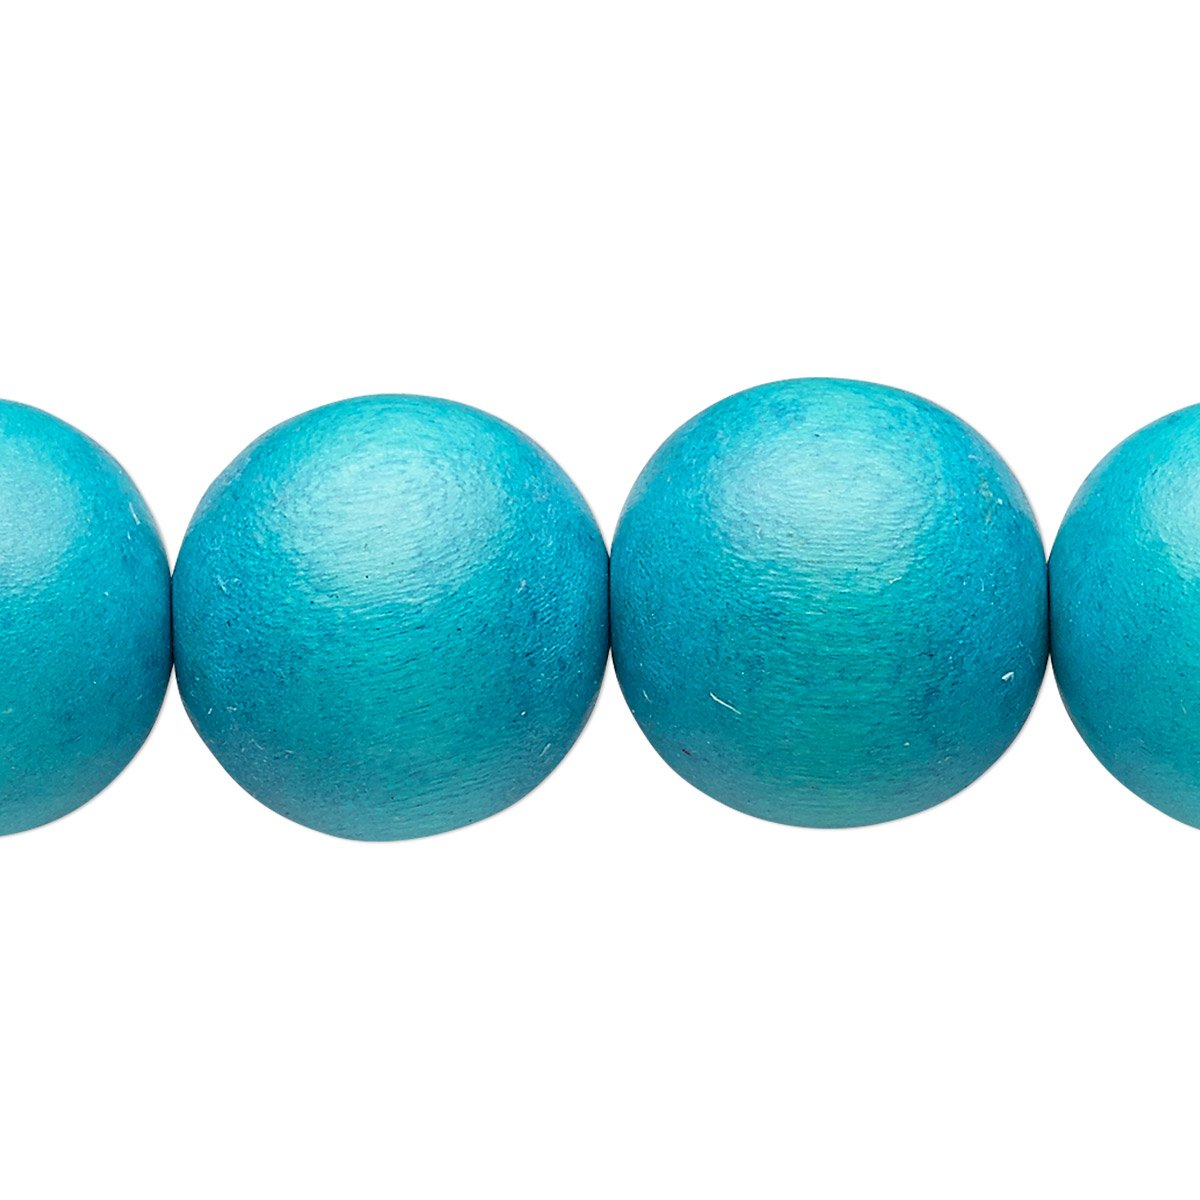 Bead wood (dyed / waxed) aqua blue 15-16mm round with 2-2.5mm hole